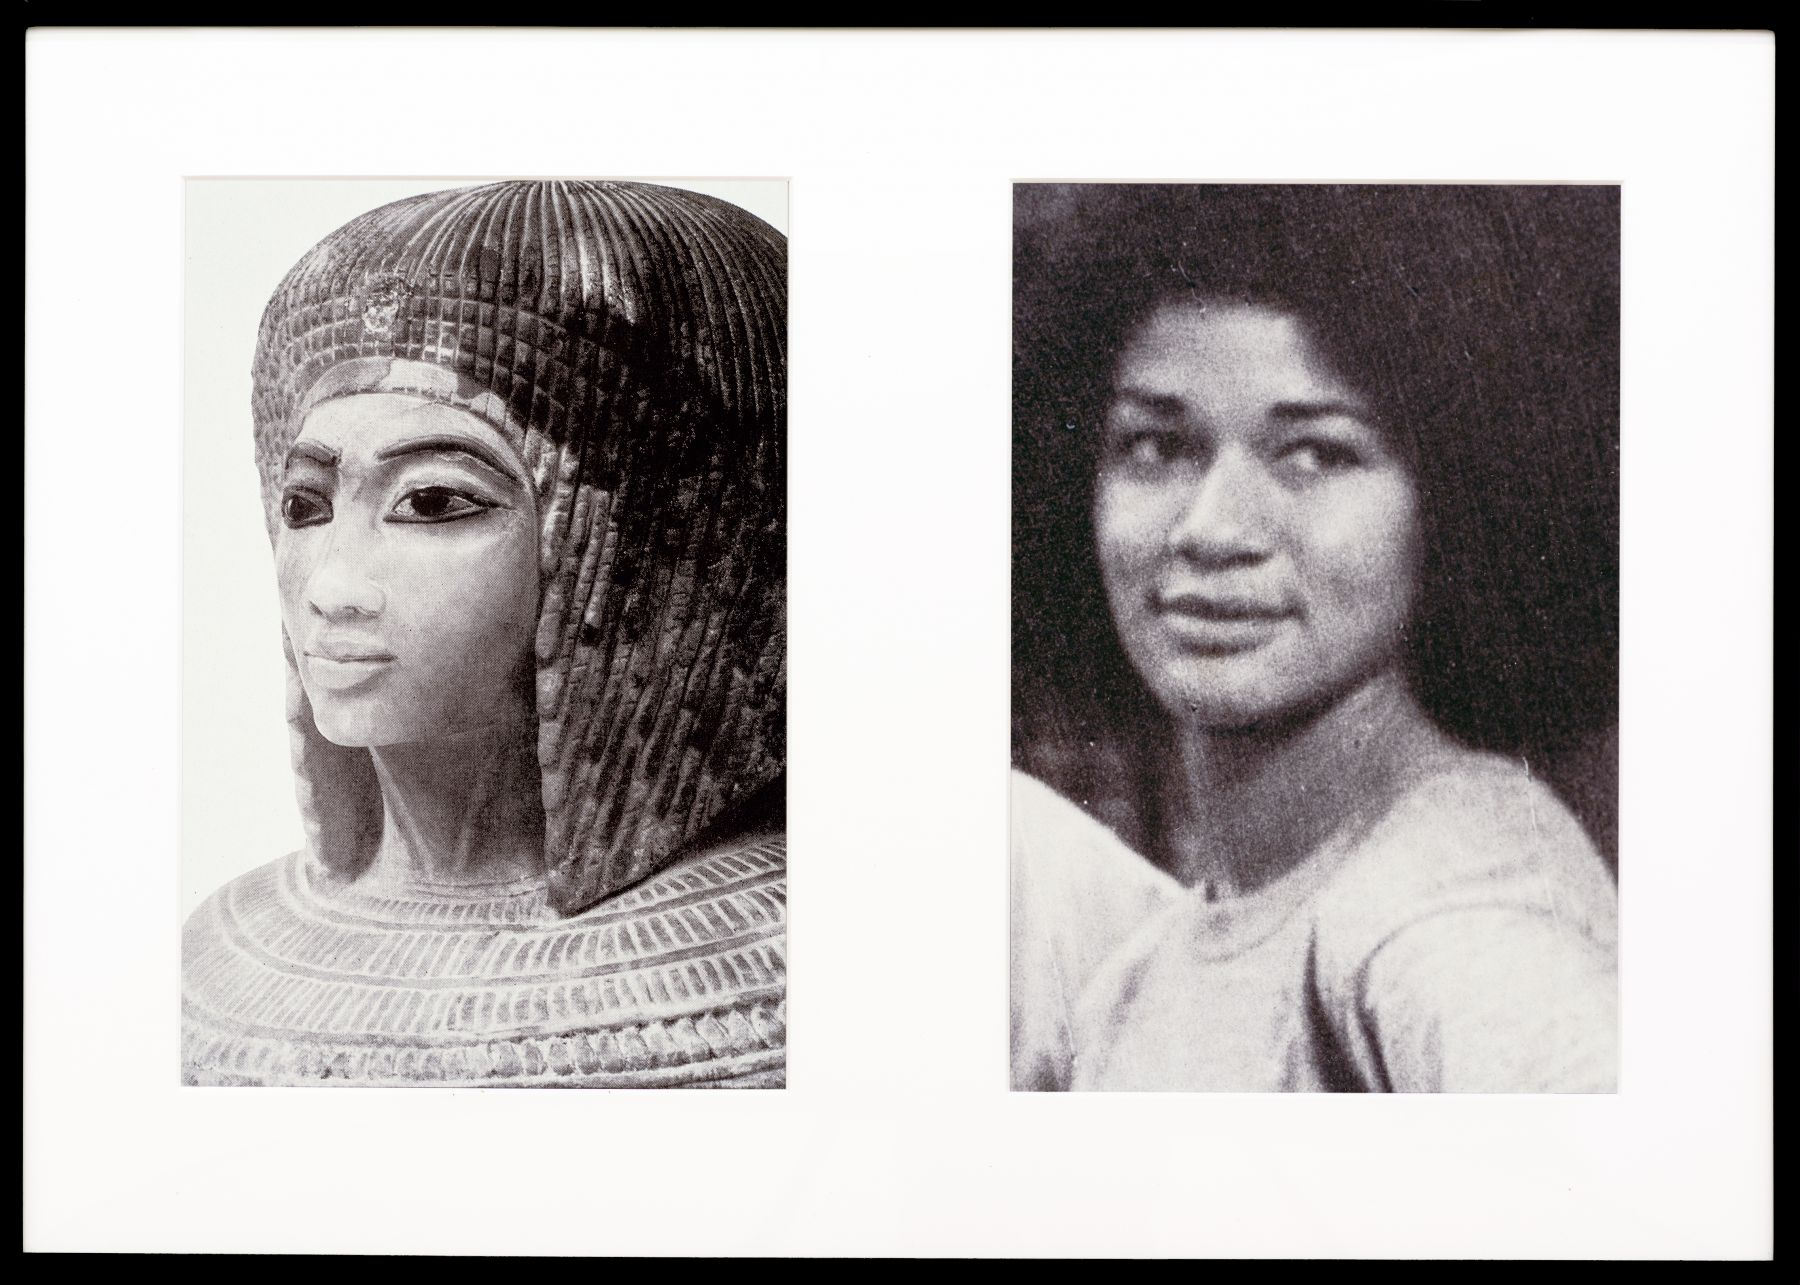 Miscegenated Family Album (Sisters II), L: Nefertiti's daughter Merytaten; R: Devonia's daughter, 1980/1994, Cibachrome prints, 26h x 37w in (66.04h x 93.98w cm)